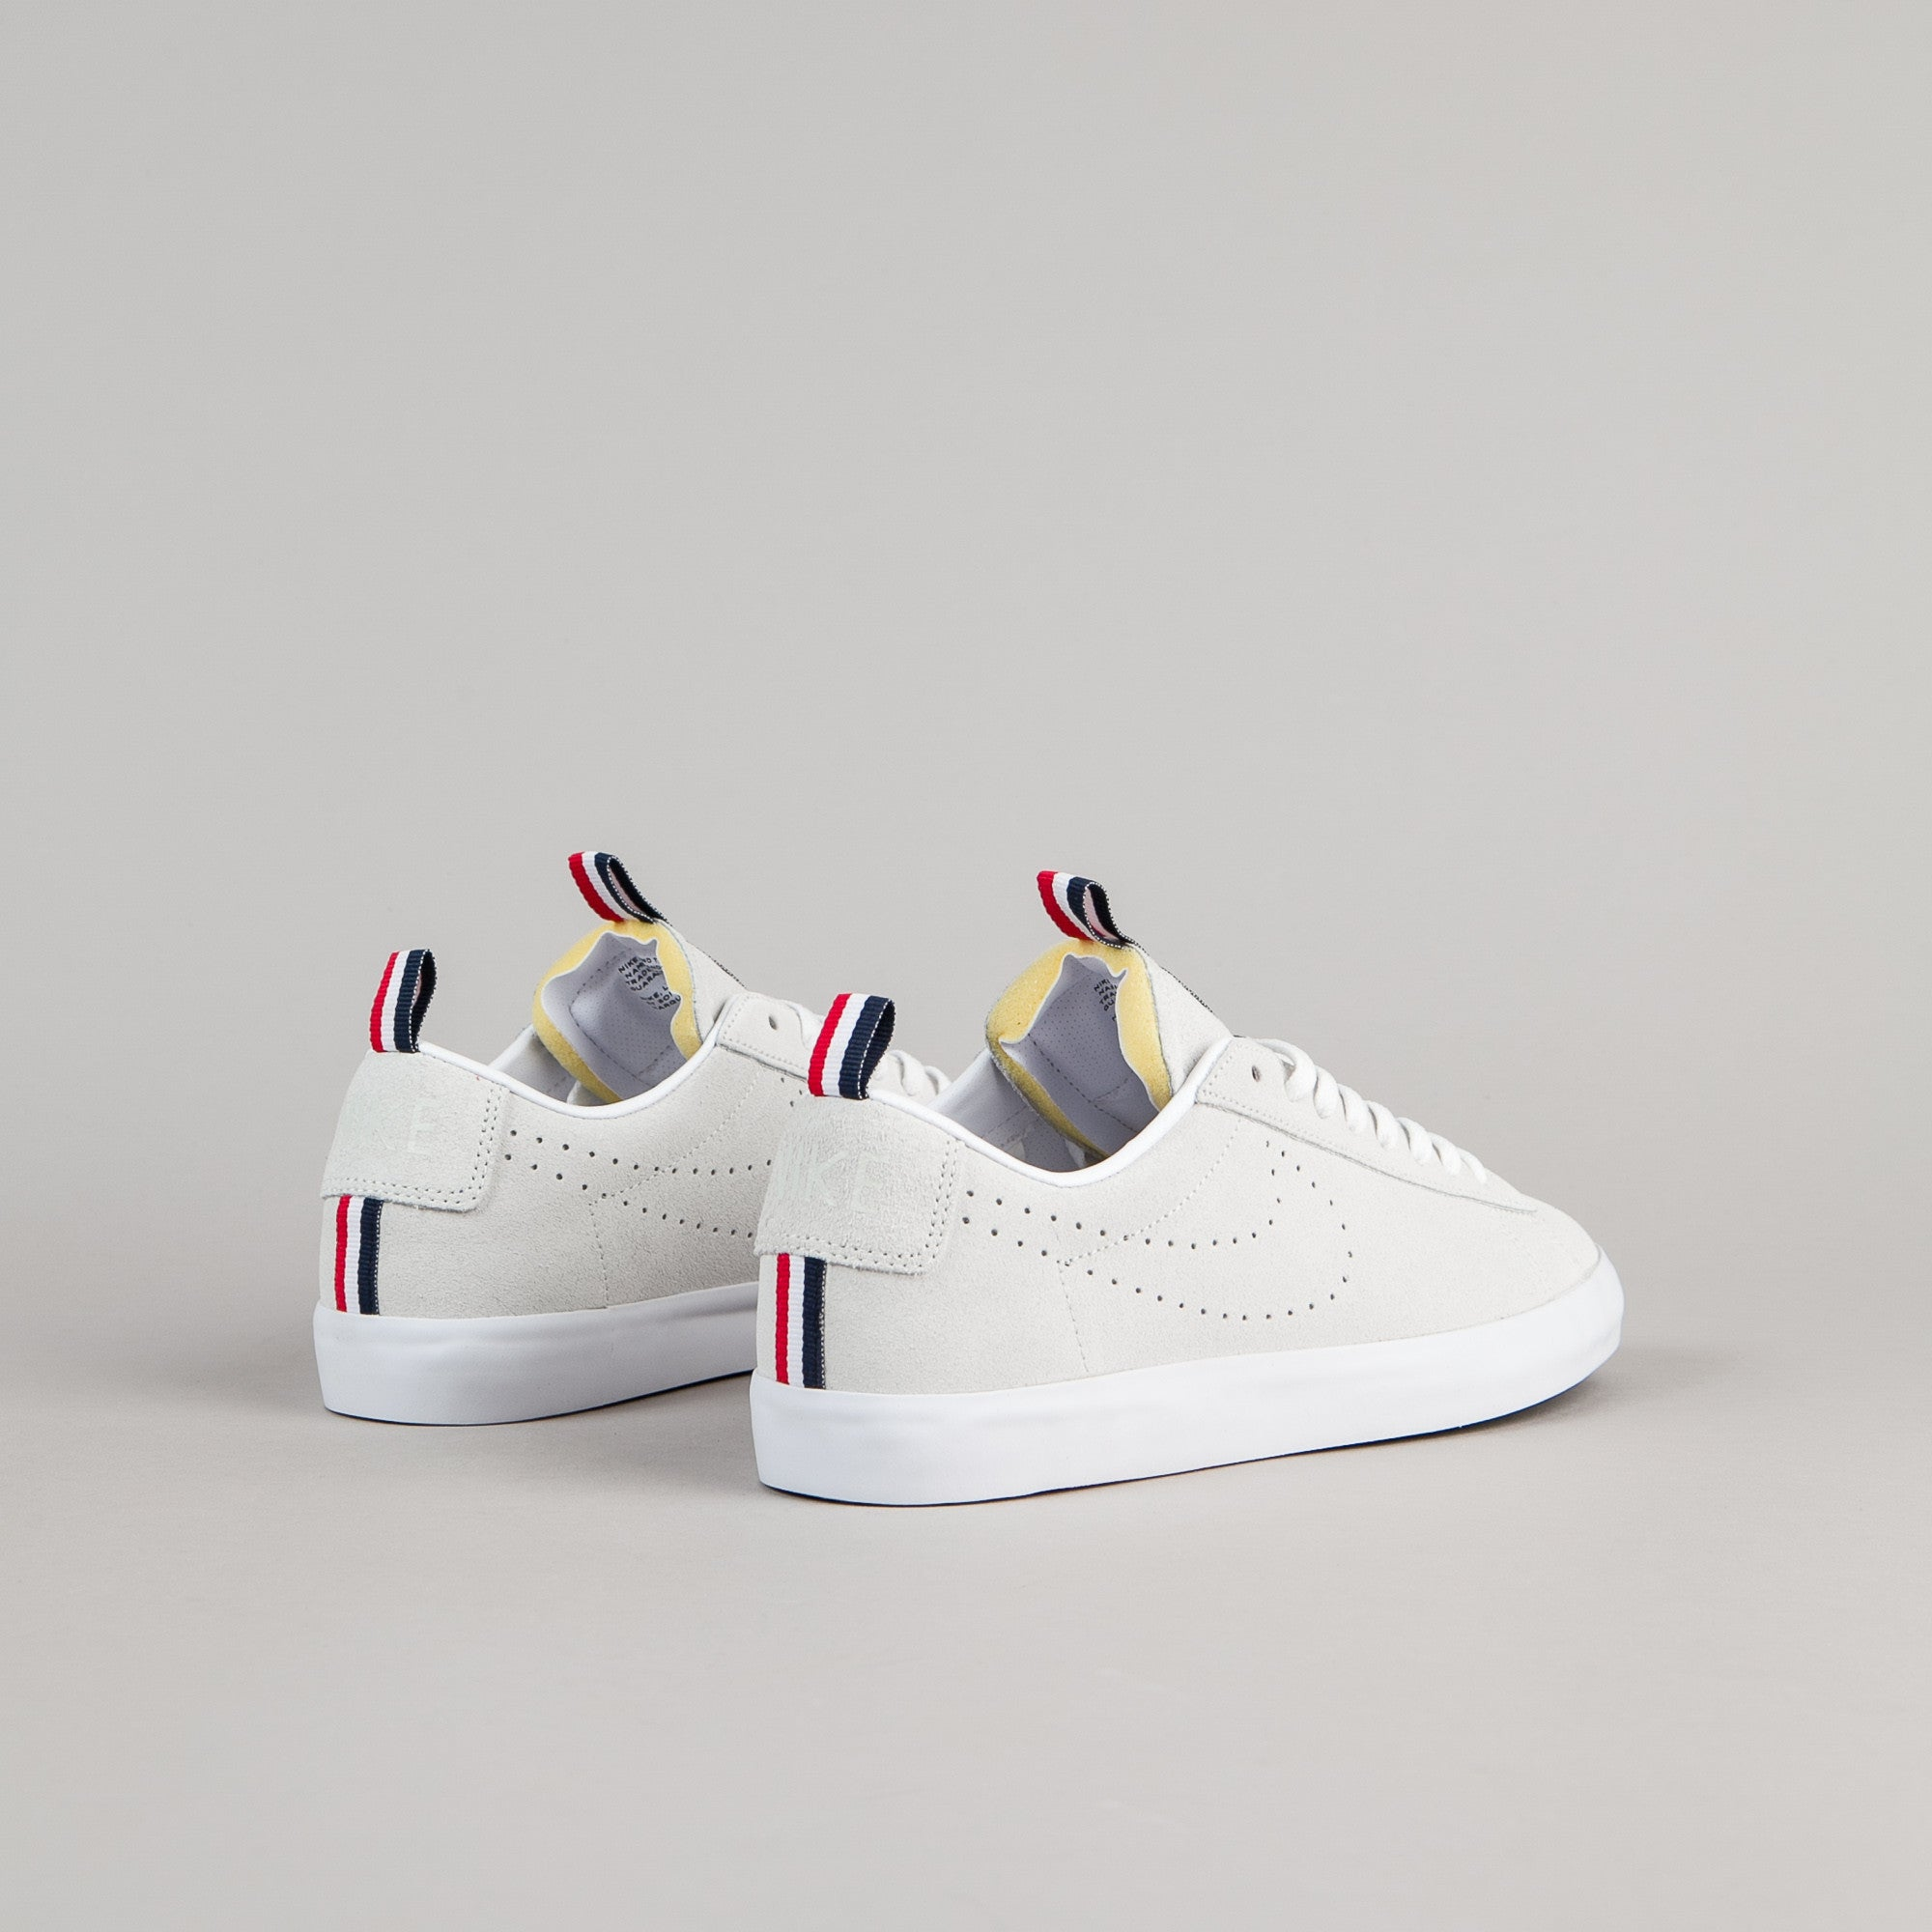 Nike SB x 917 Blazer Low GT Premium Shoes - Summit White / Summit White - White - Obsidian